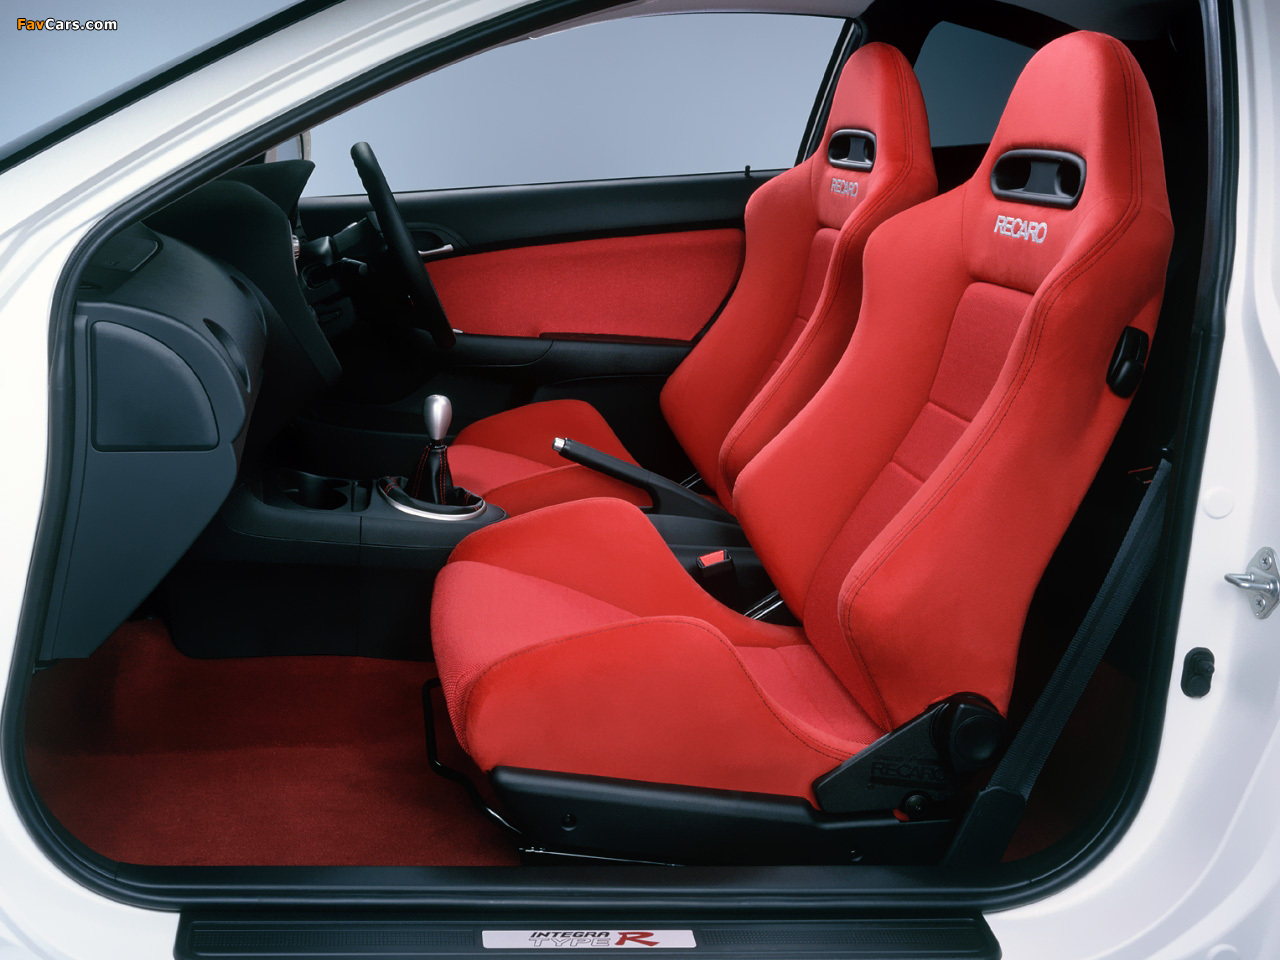 honda integra type r dc5 2004 06 wallpapers 1280x960. Black Bedroom Furniture Sets. Home Design Ideas